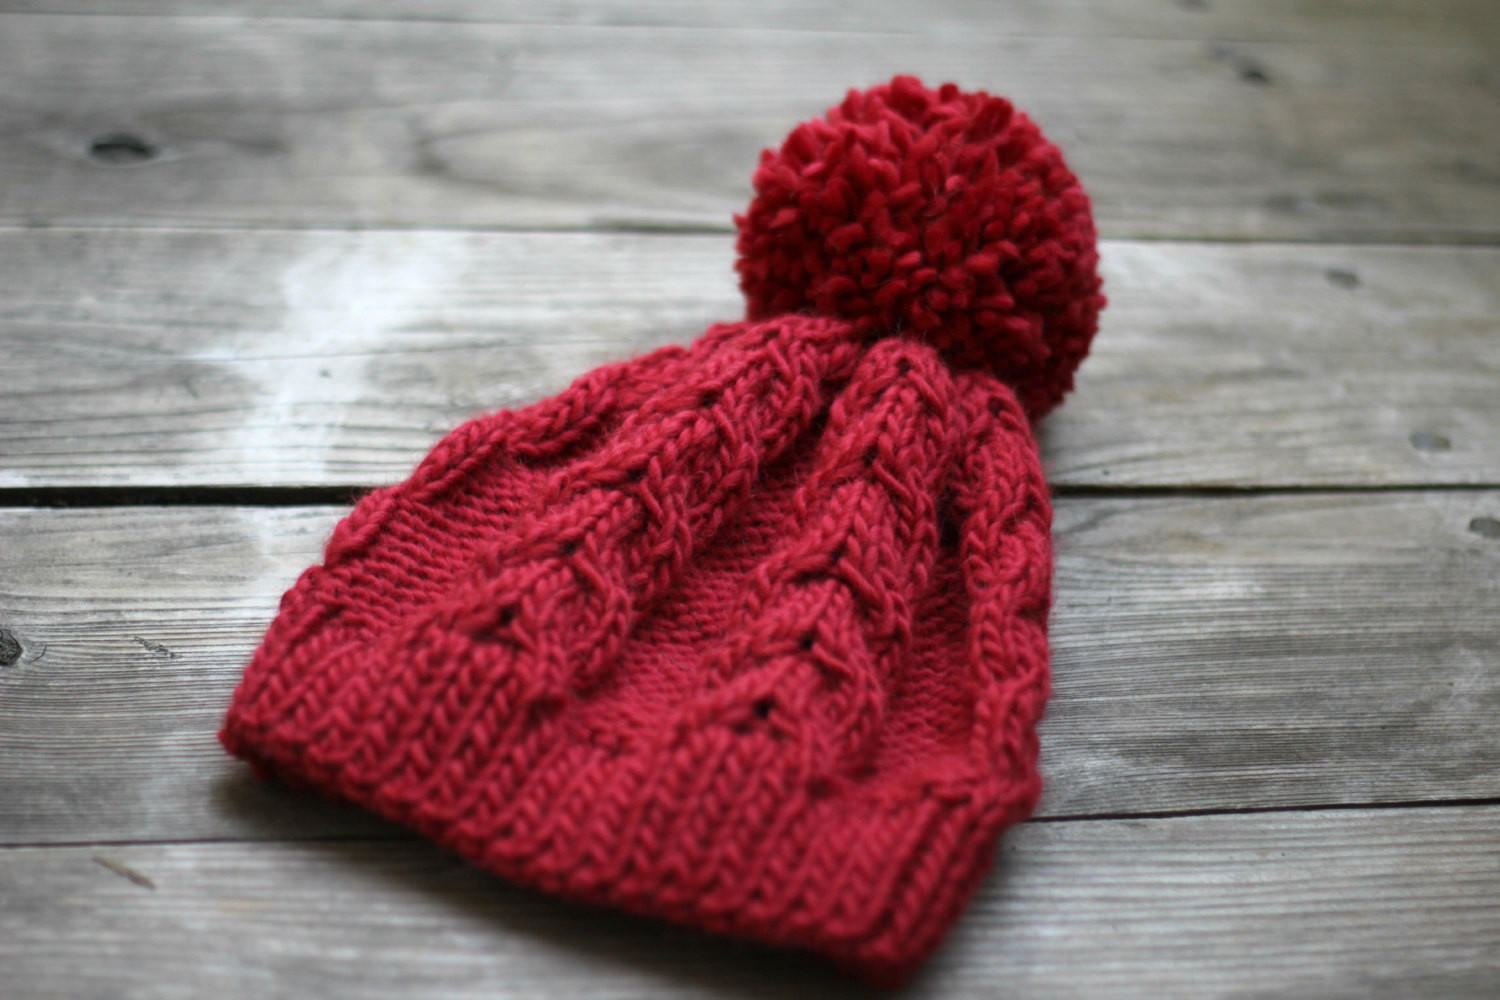 5c6bdd54ea5b74 Knit beanie hat in marsala red with pom pom, winter accessories